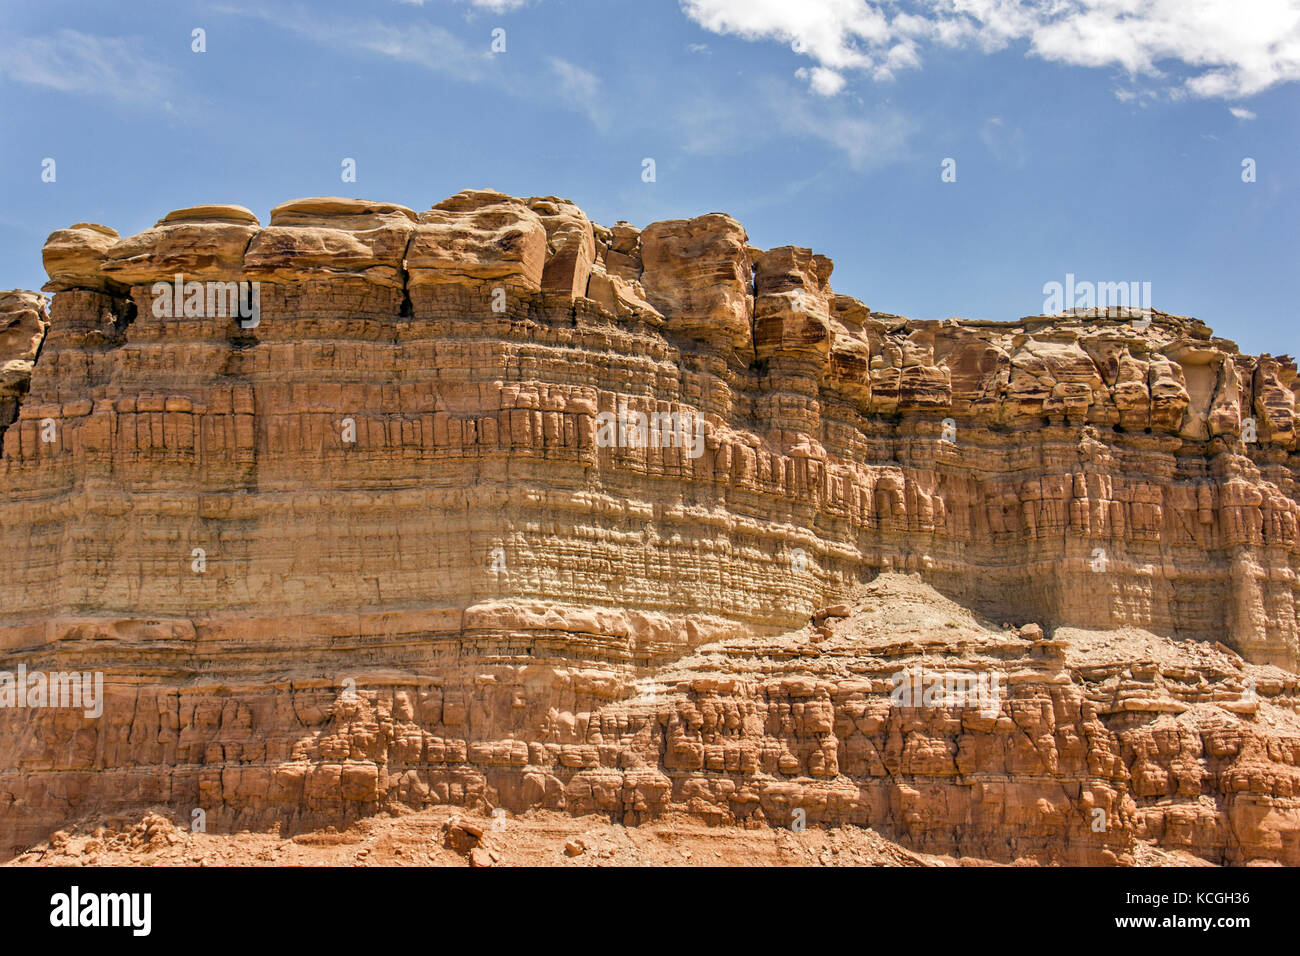 Multi-layered rock formations in the middle of Utah. - Stock Image